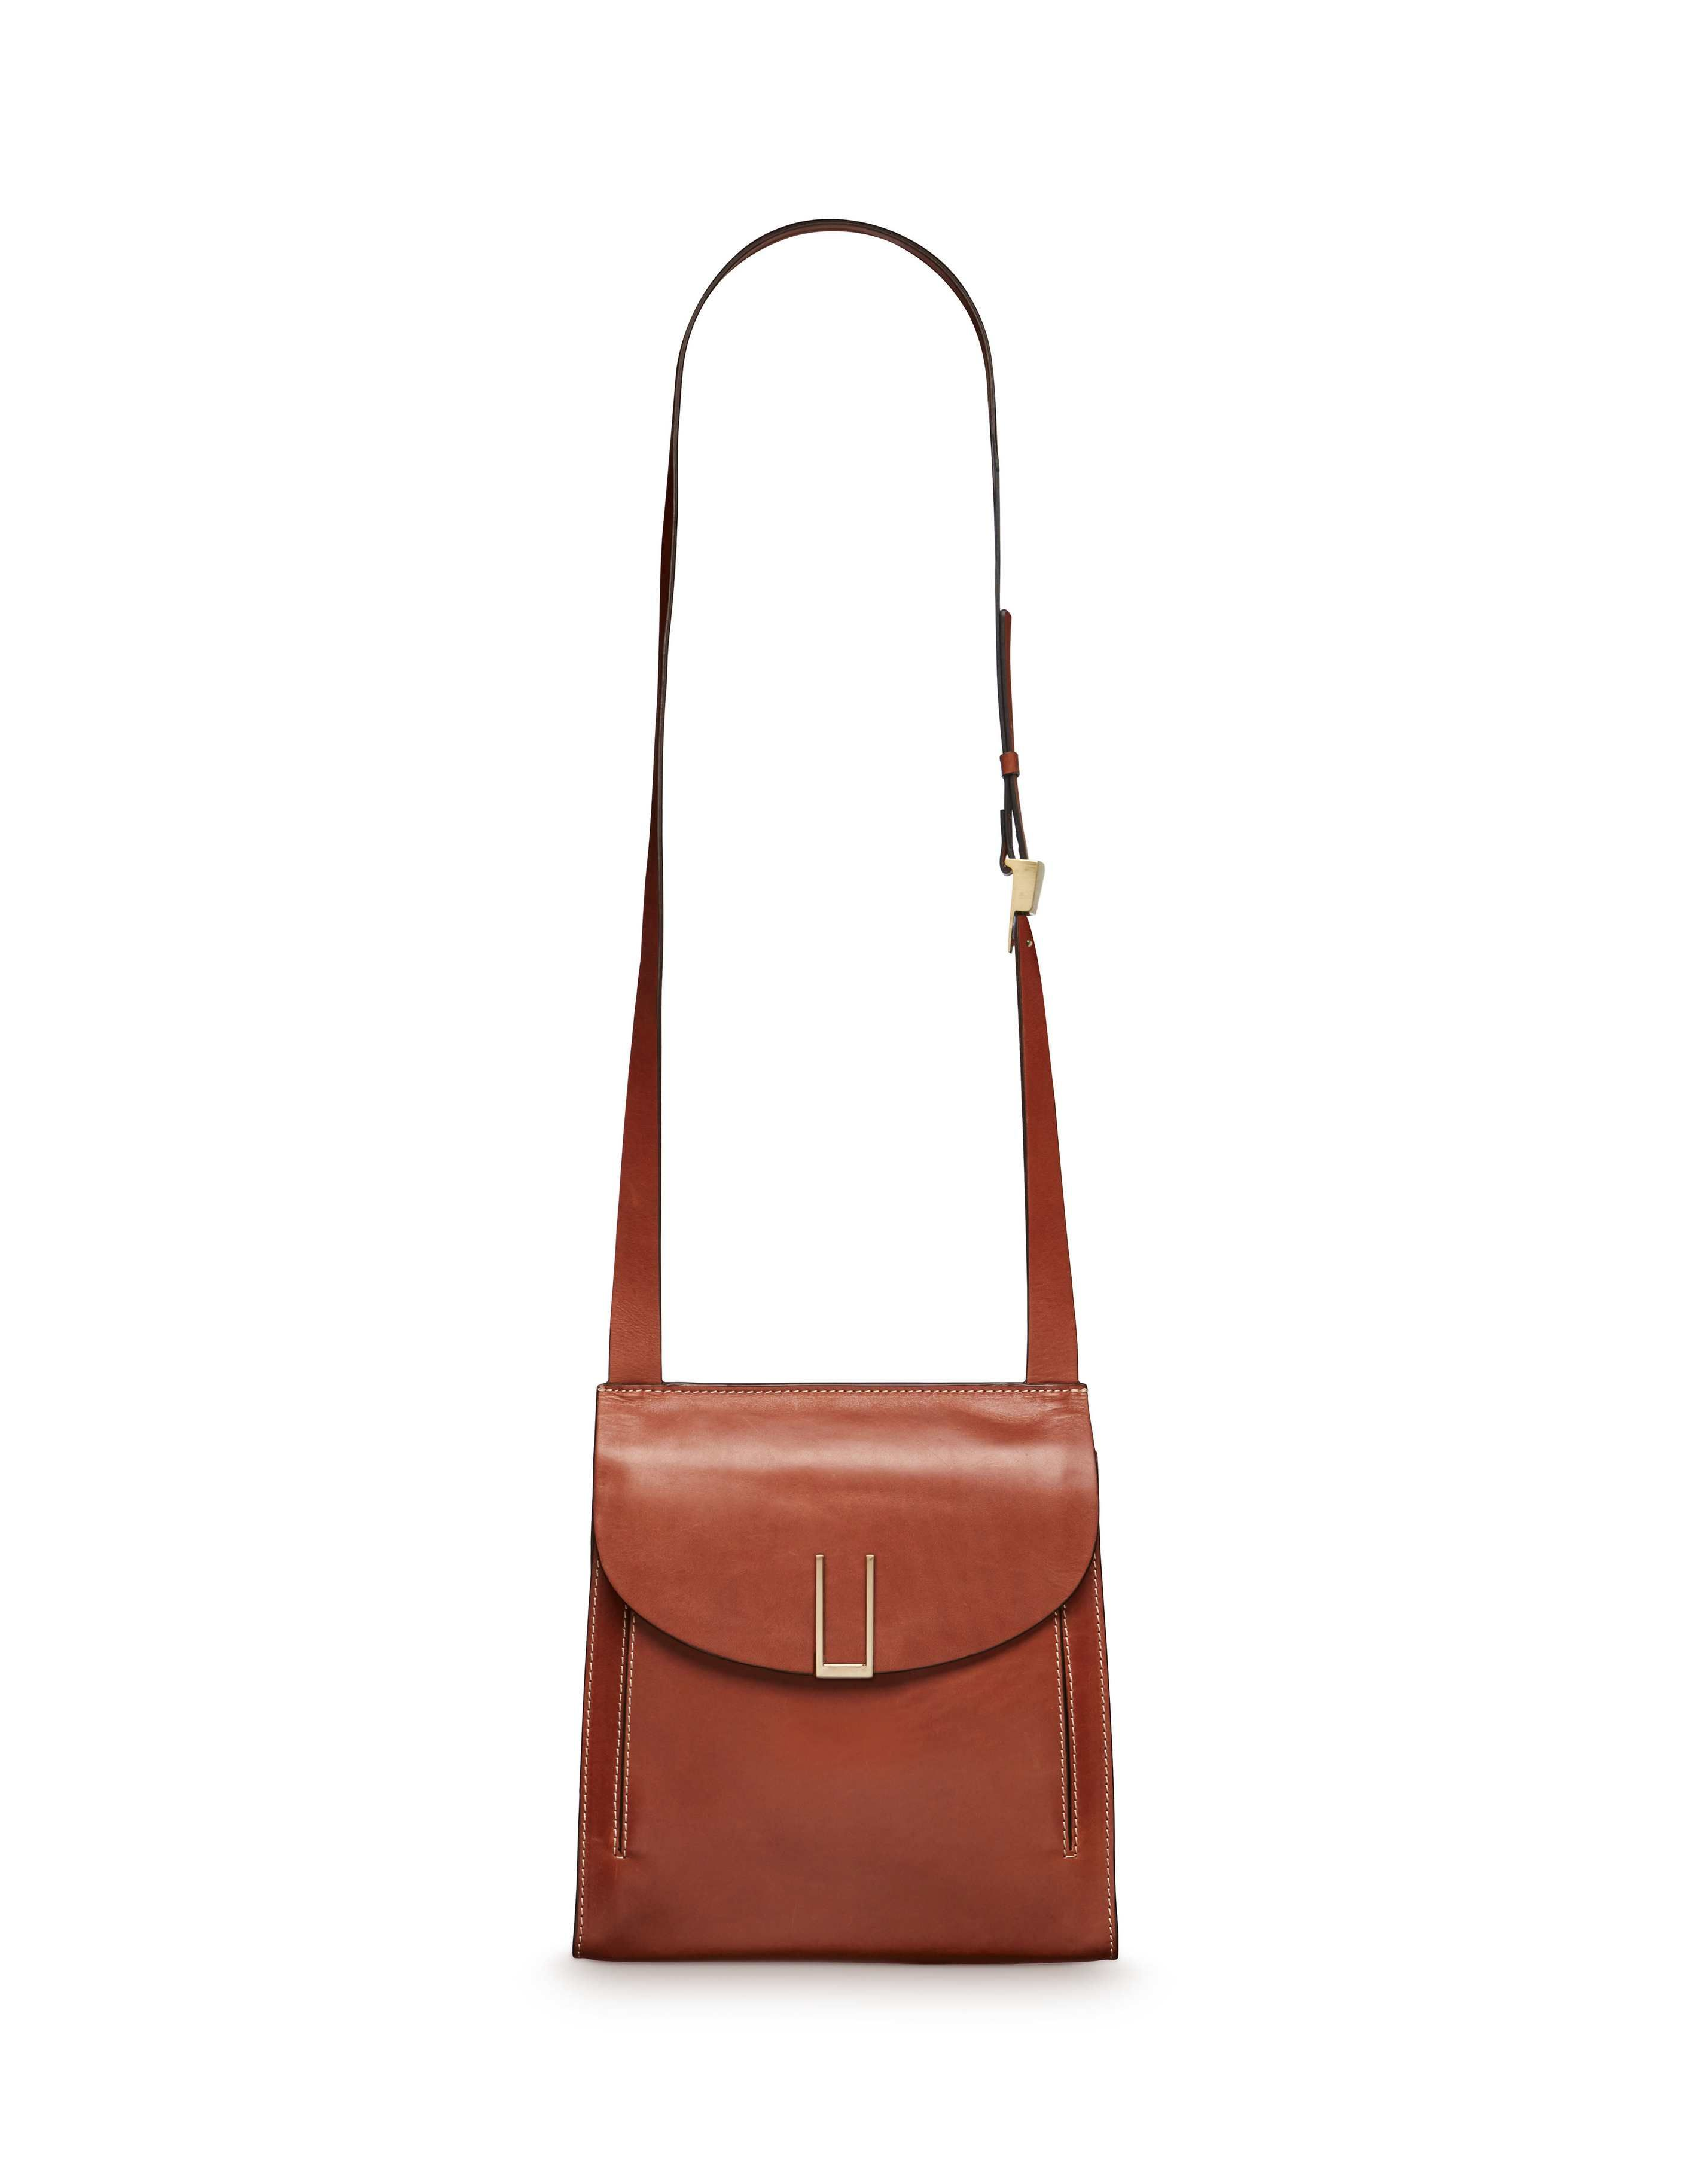 0254227e897 Women s crossbody bag in plain leather with U-shape buckle. Features  adjustable shoulder strap